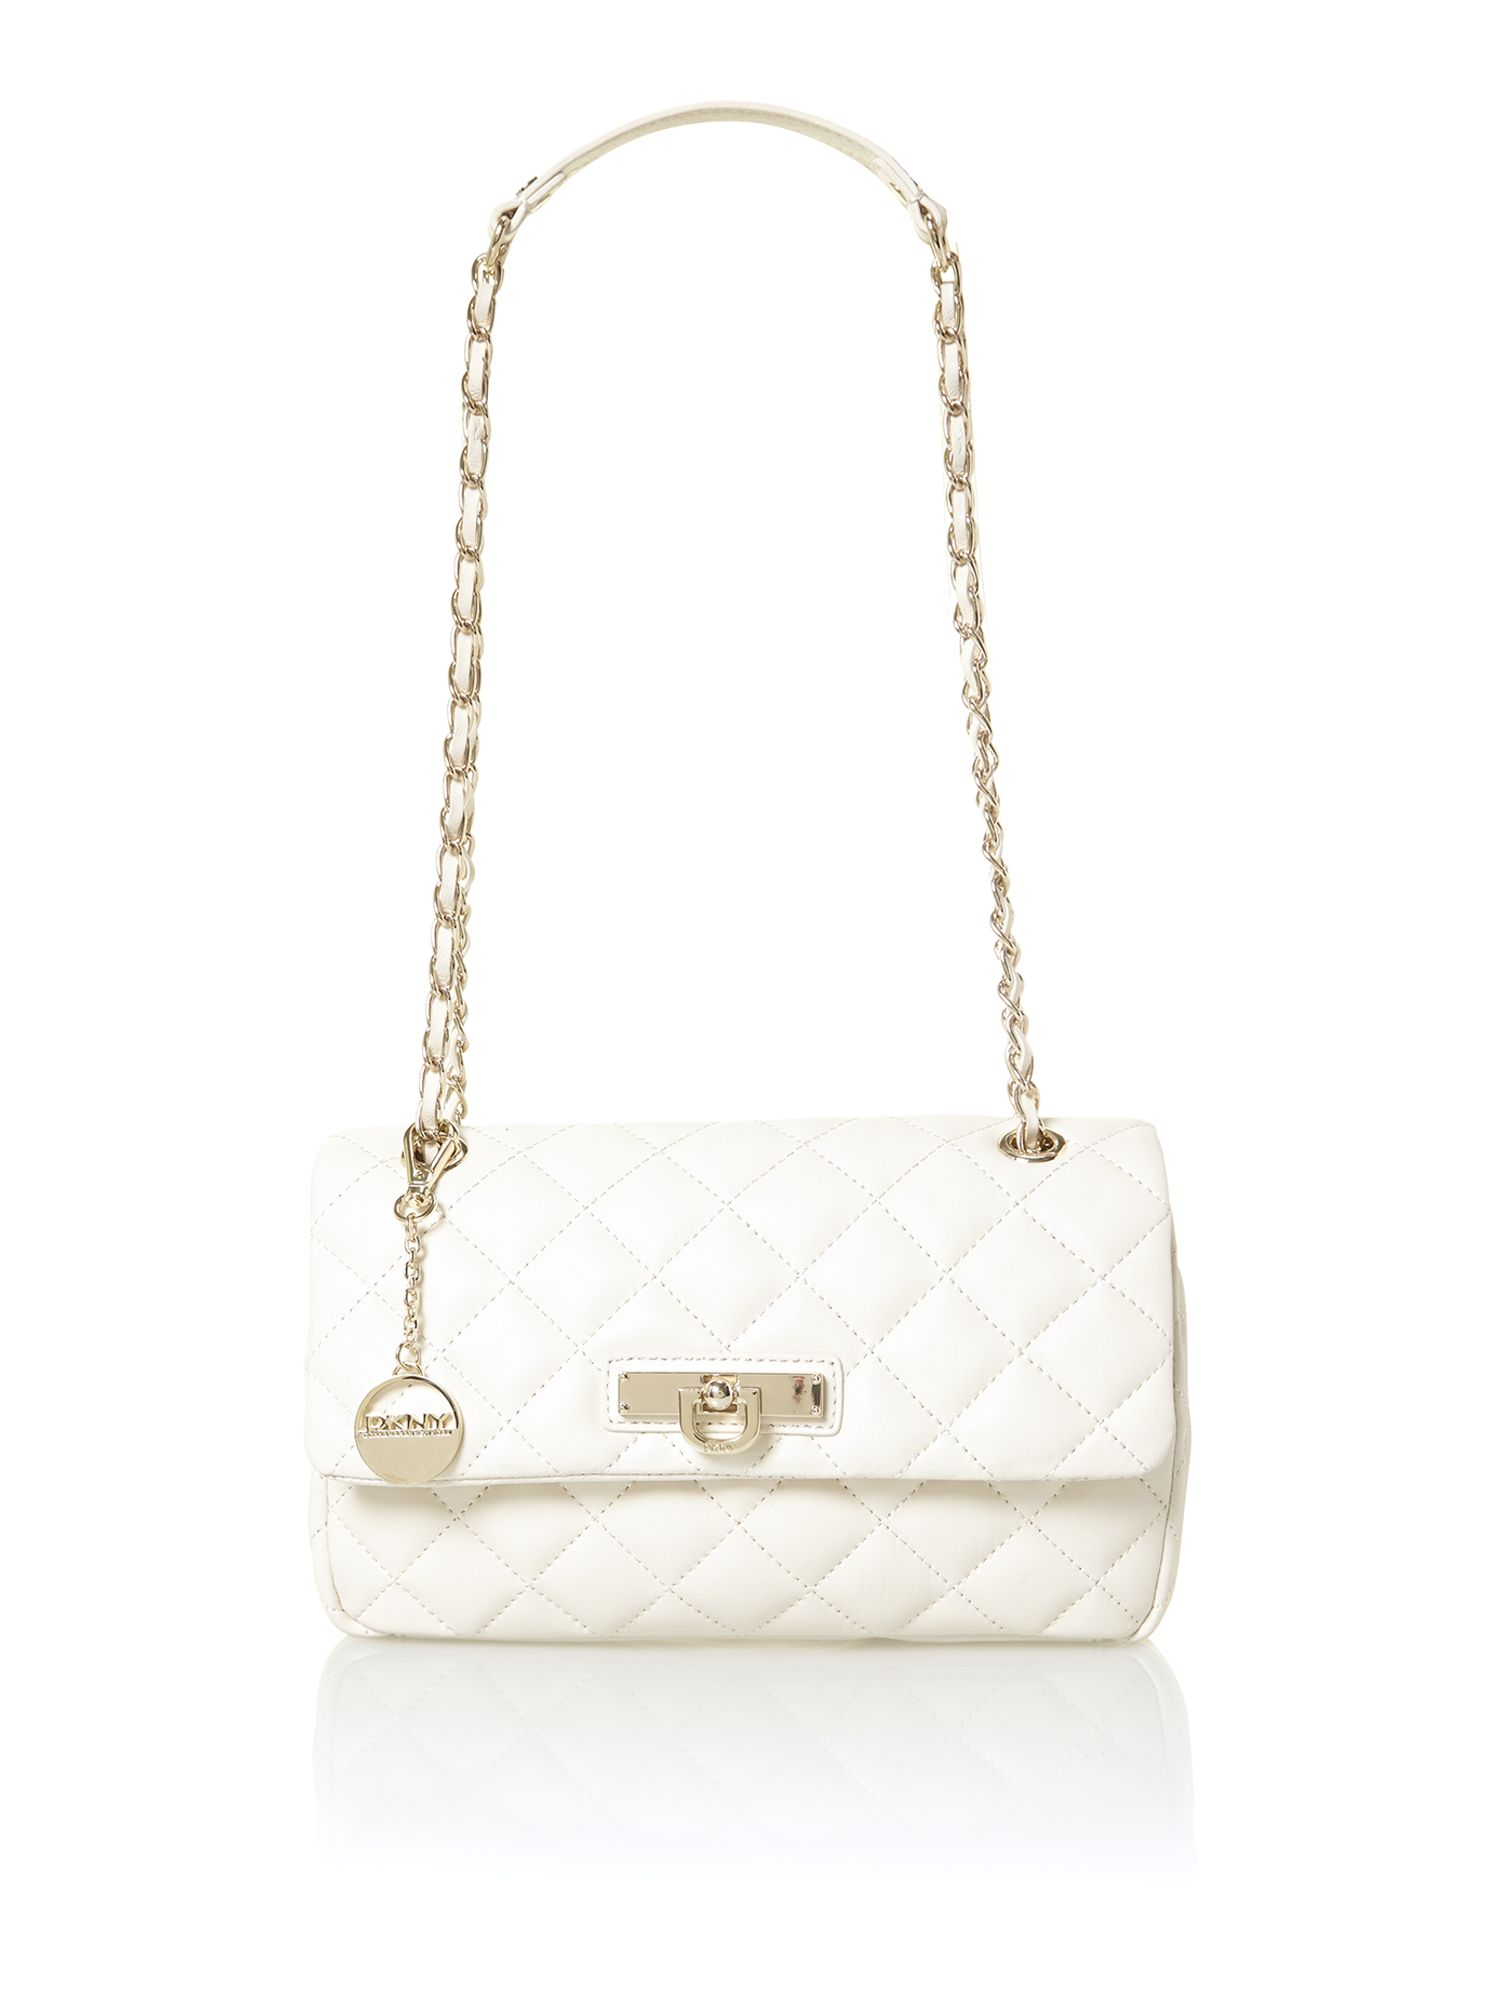 Dkny Quilted Neutral Shoulder Bag in White | Lyst